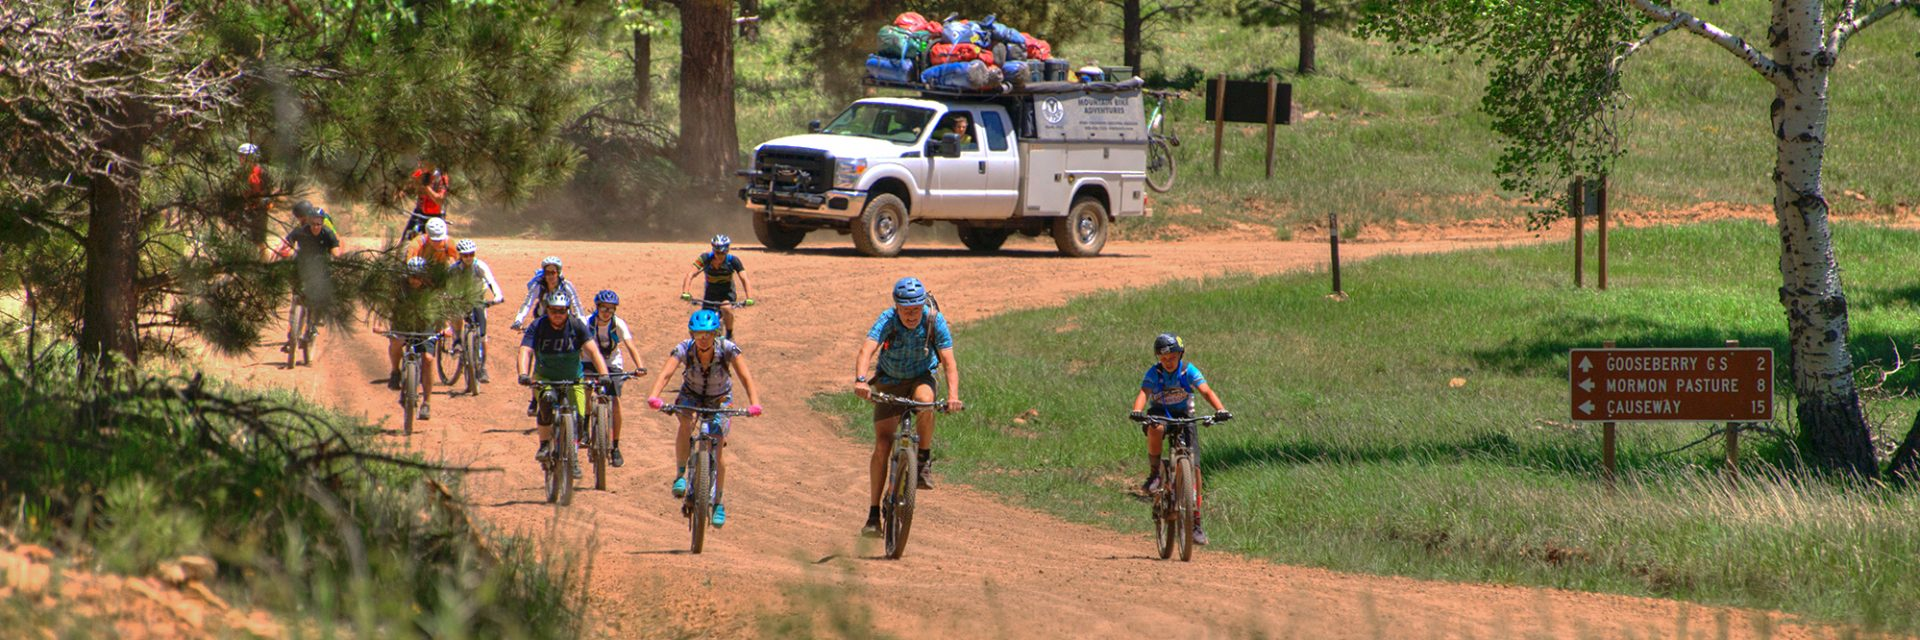 Bears Ears riders follow their guide past an intersection with the support truck behind them